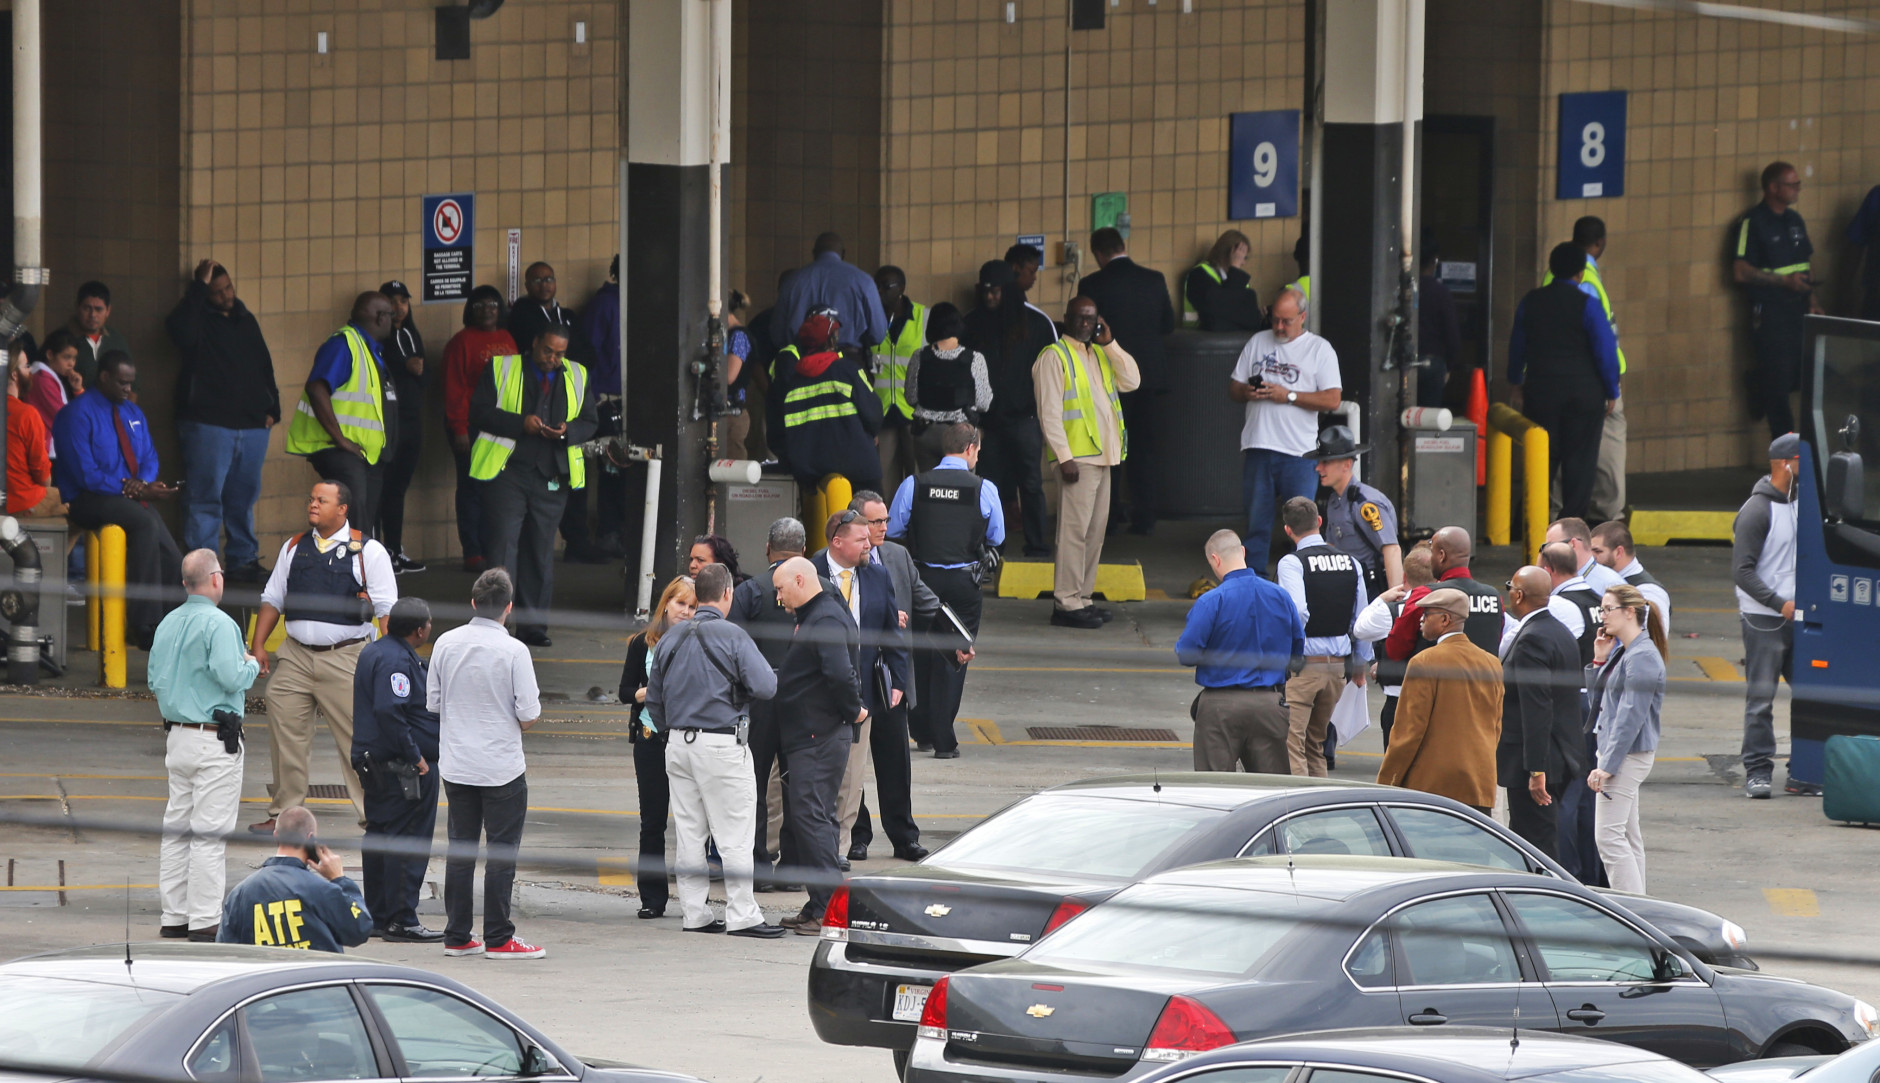 Police and rescue officials gather outside the Greyhound Bus Station Thursday, March 31, 2016, in Richmond, Va. Virginia State Police say two troopers responding to a shooting at the Richmond bus station and a civilian have been taken to a hospital. A police spokeswoman says the shooting suspect was in custody. (AP Photo/Steve Helber)